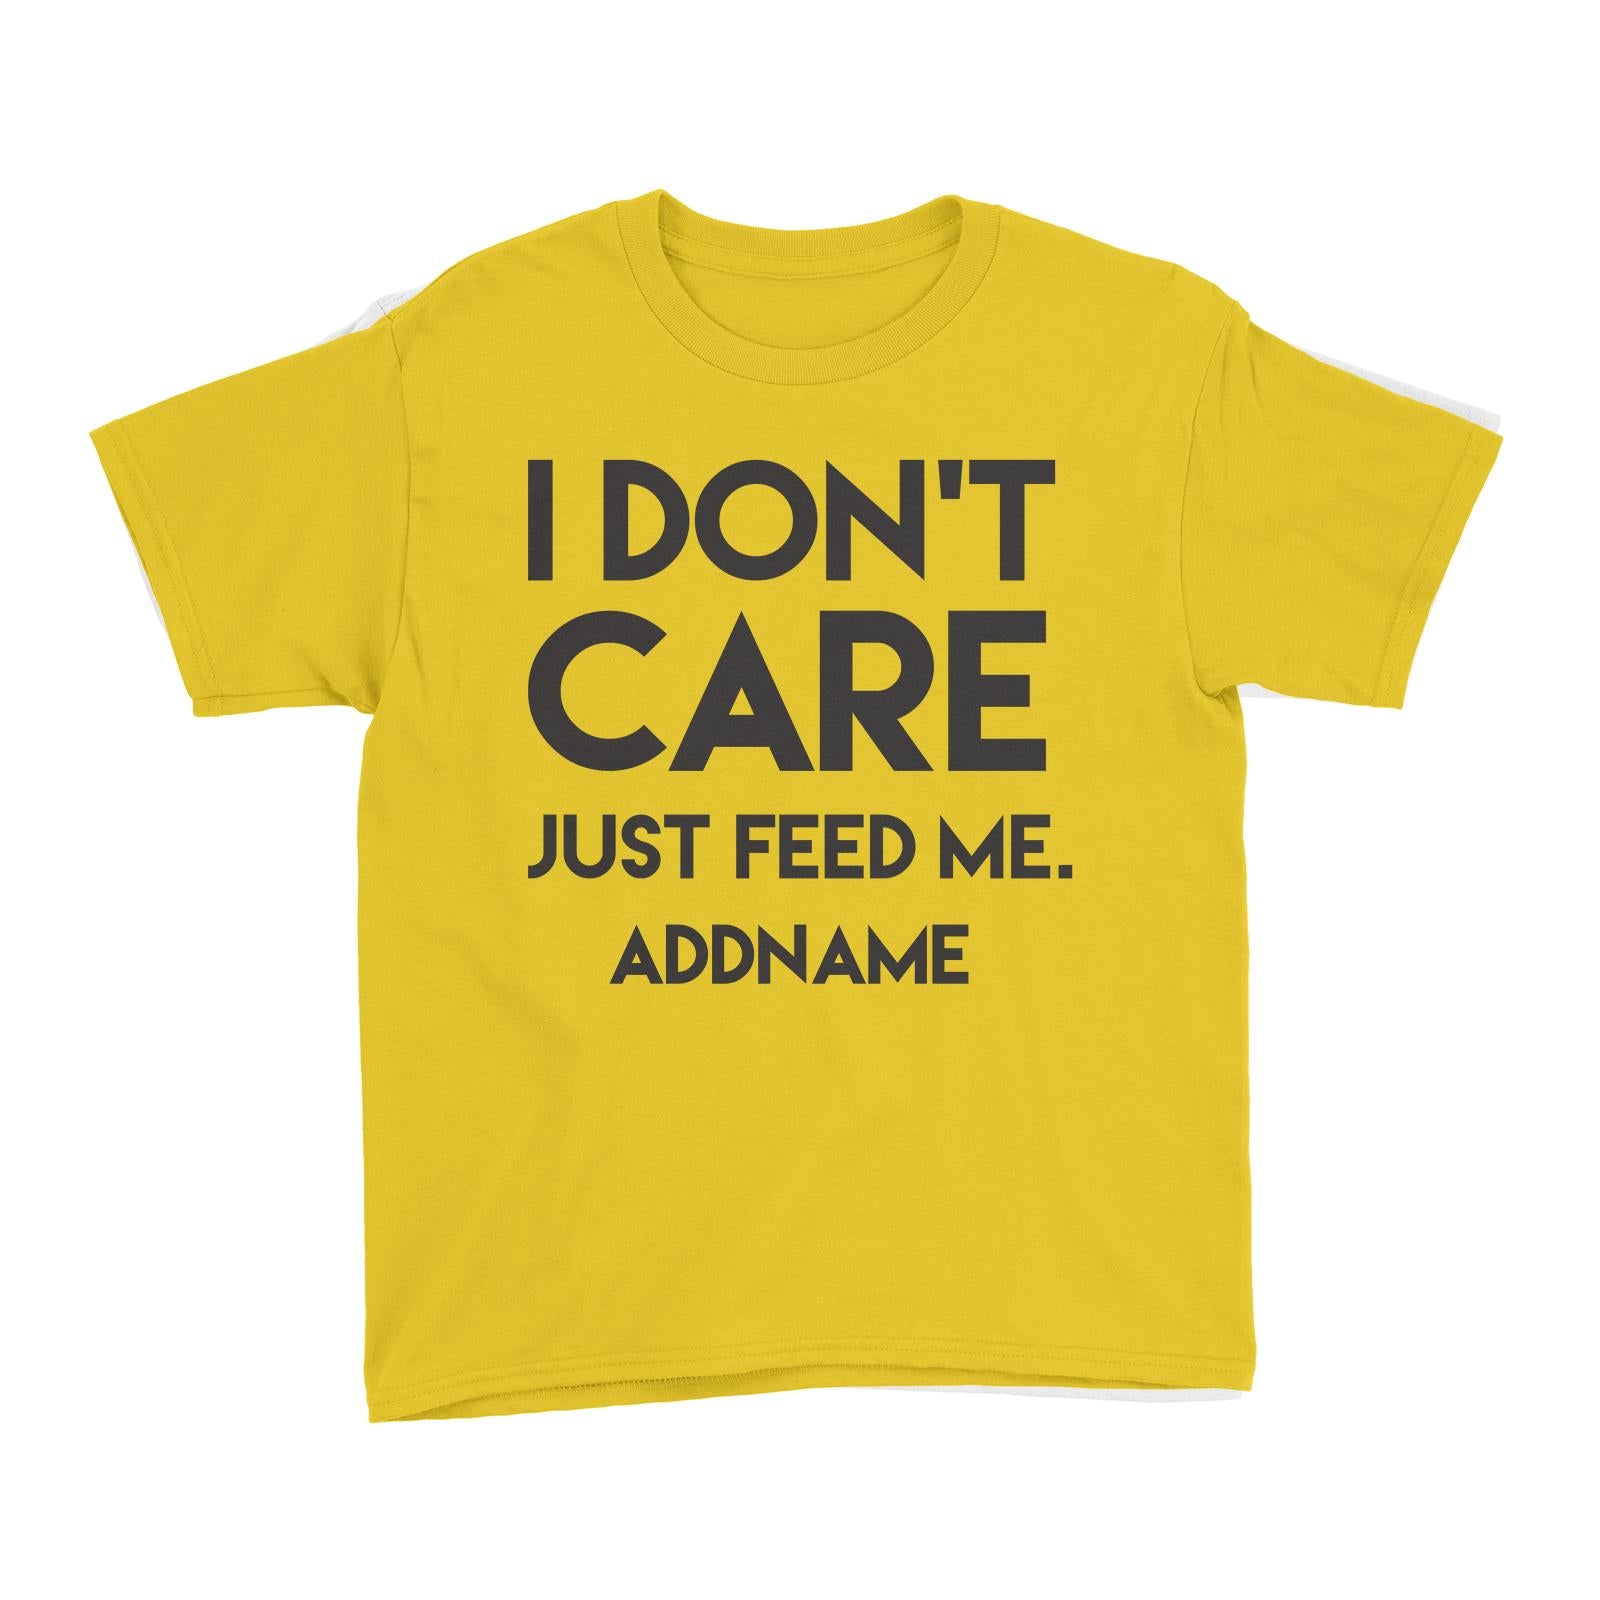 I Don't Care Who's Right Just Feed Me Addname Kid's T-Shirt  Funny Matching Family Personalizable Designs